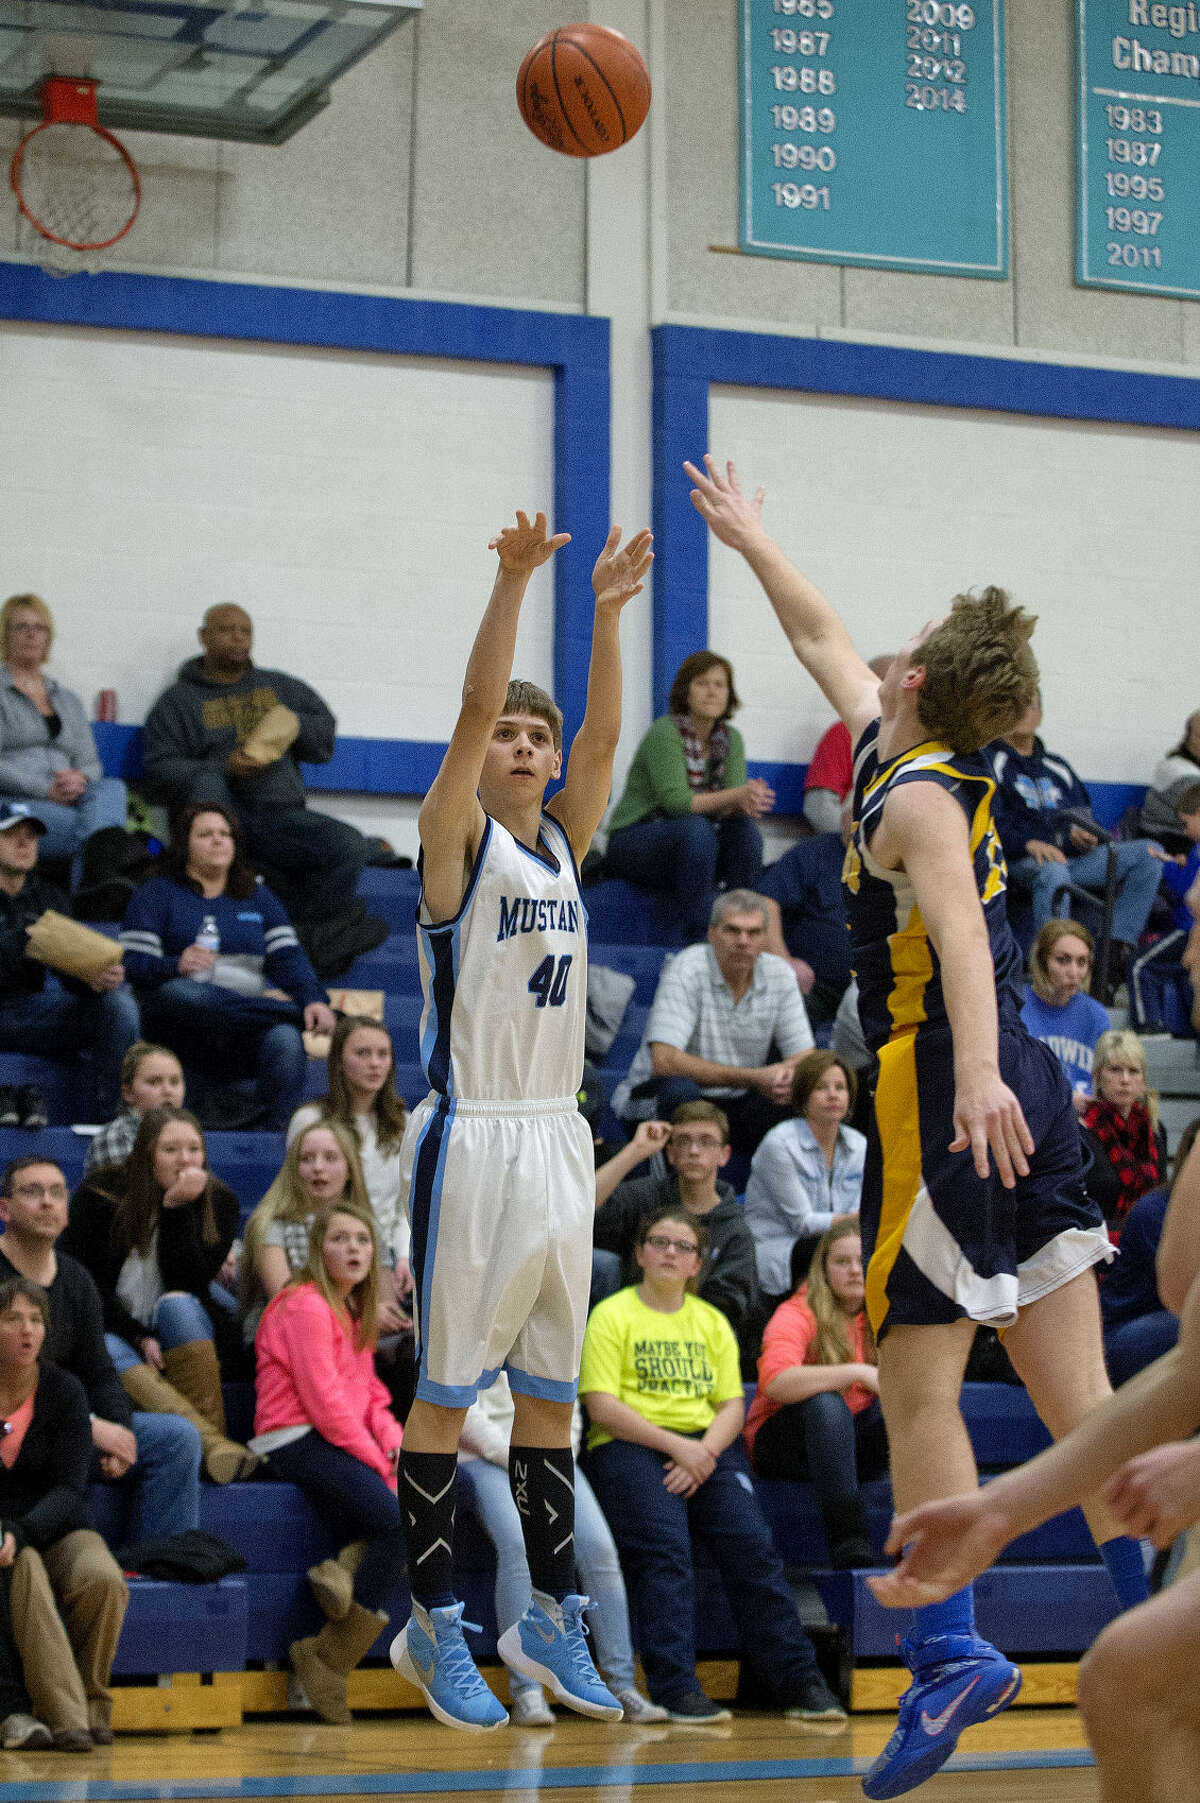 Meridian's Lucas Lueder shoots a 3-pointer as Roscommon's Kaleb Keipert defends during the first half on Tuesday at Meridian High School.